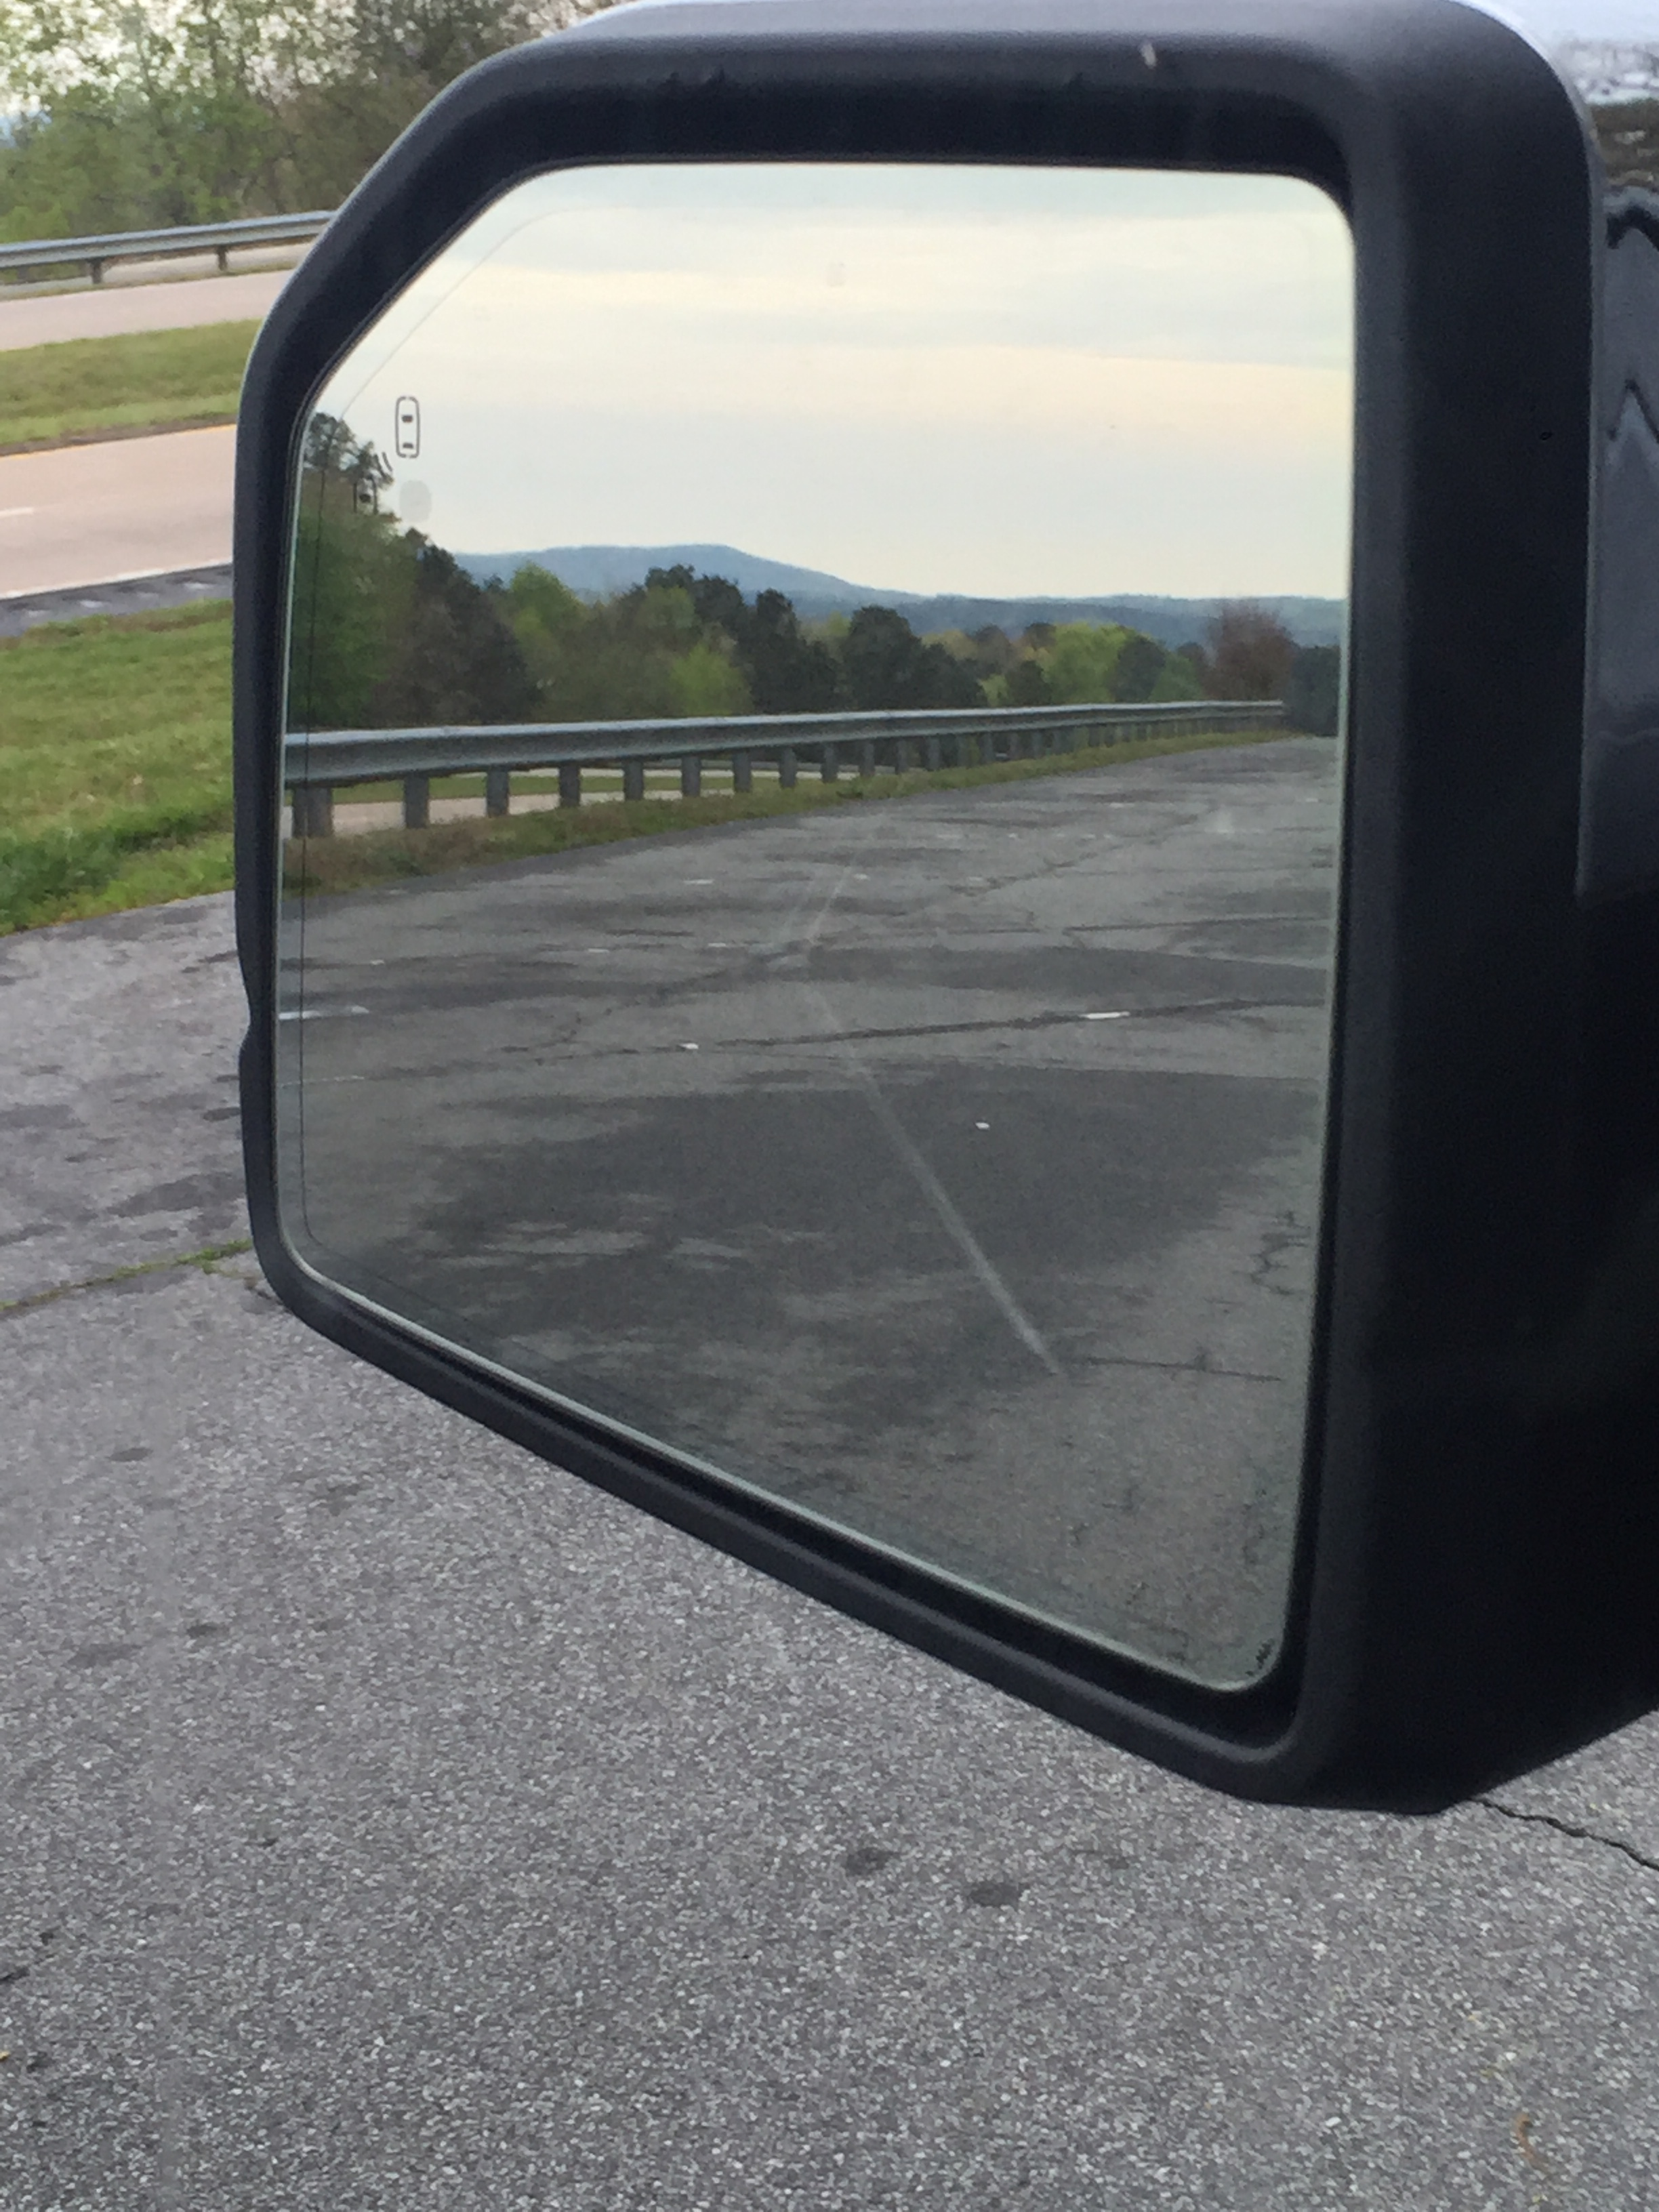 Front Windshield vs Rear Mirror What Do You Think?